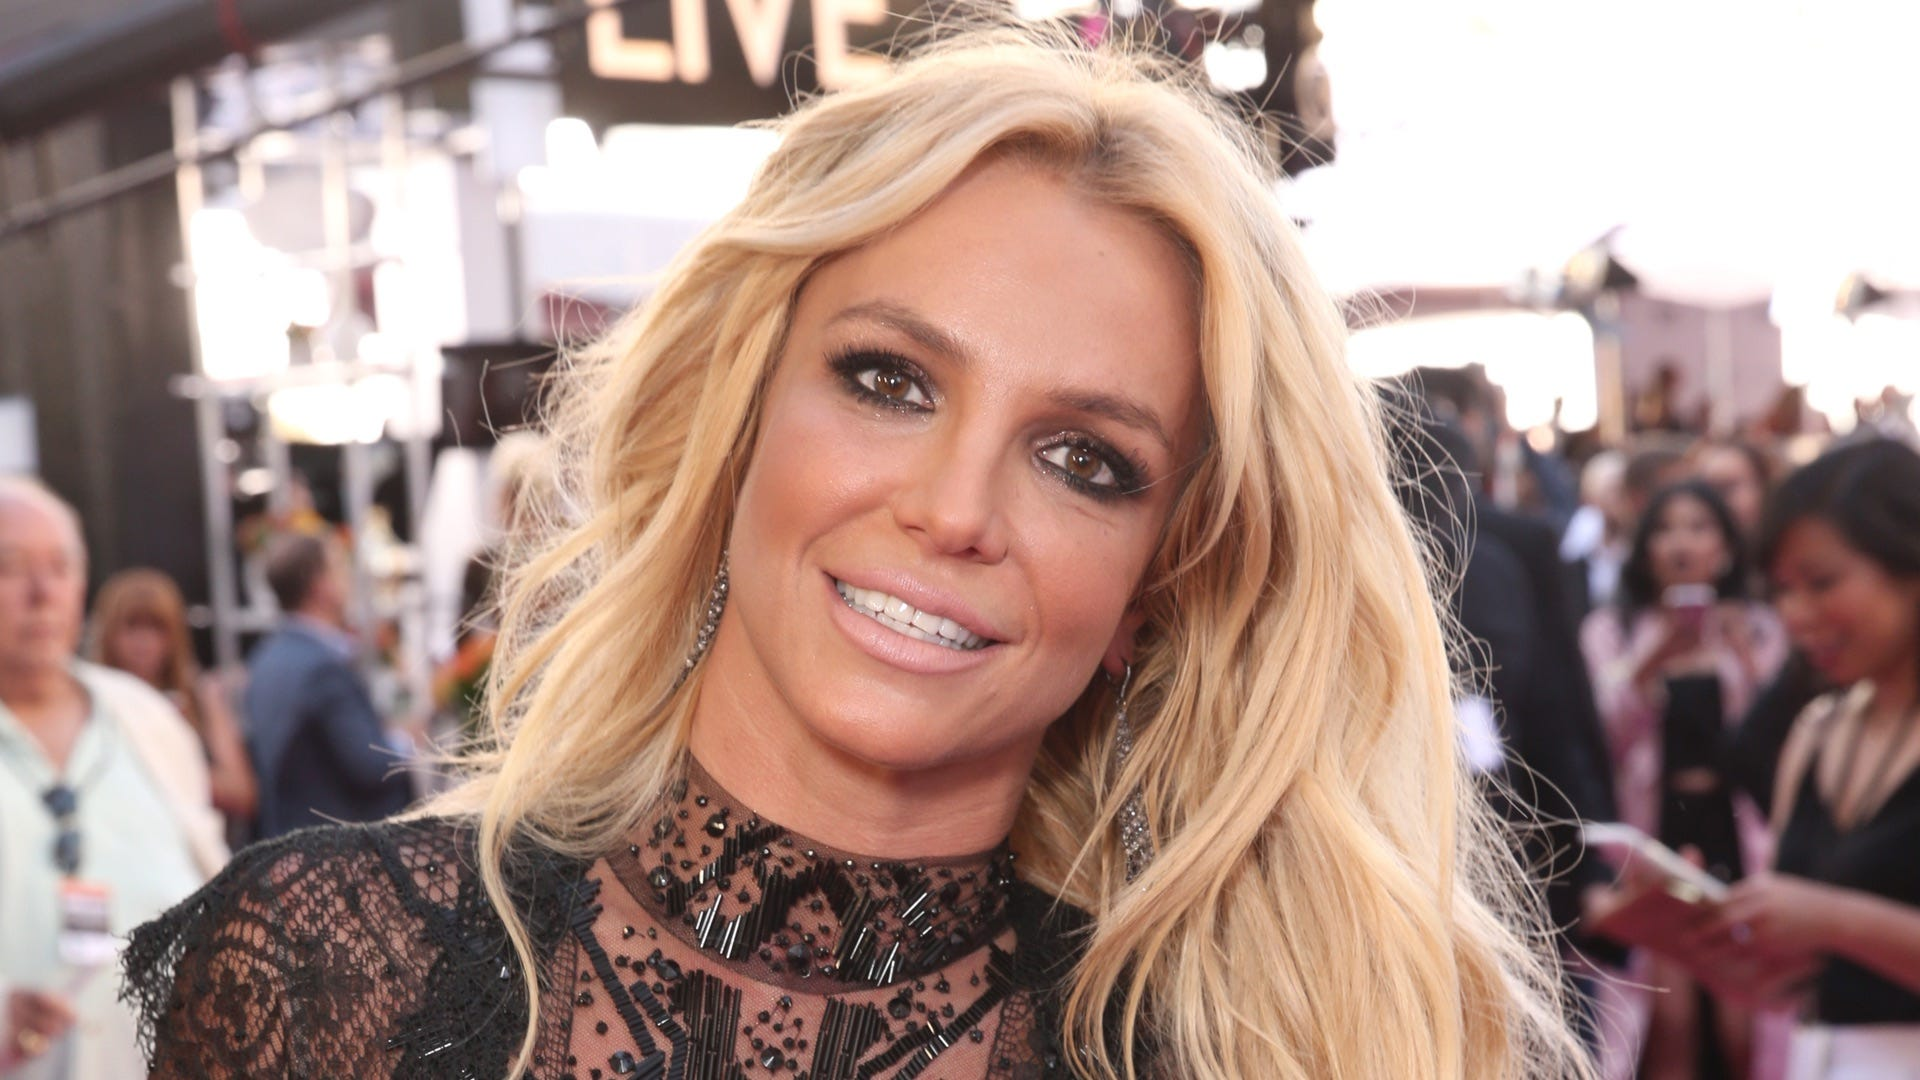 Netflix has its own Britney Spears documentary: Here's the trailer